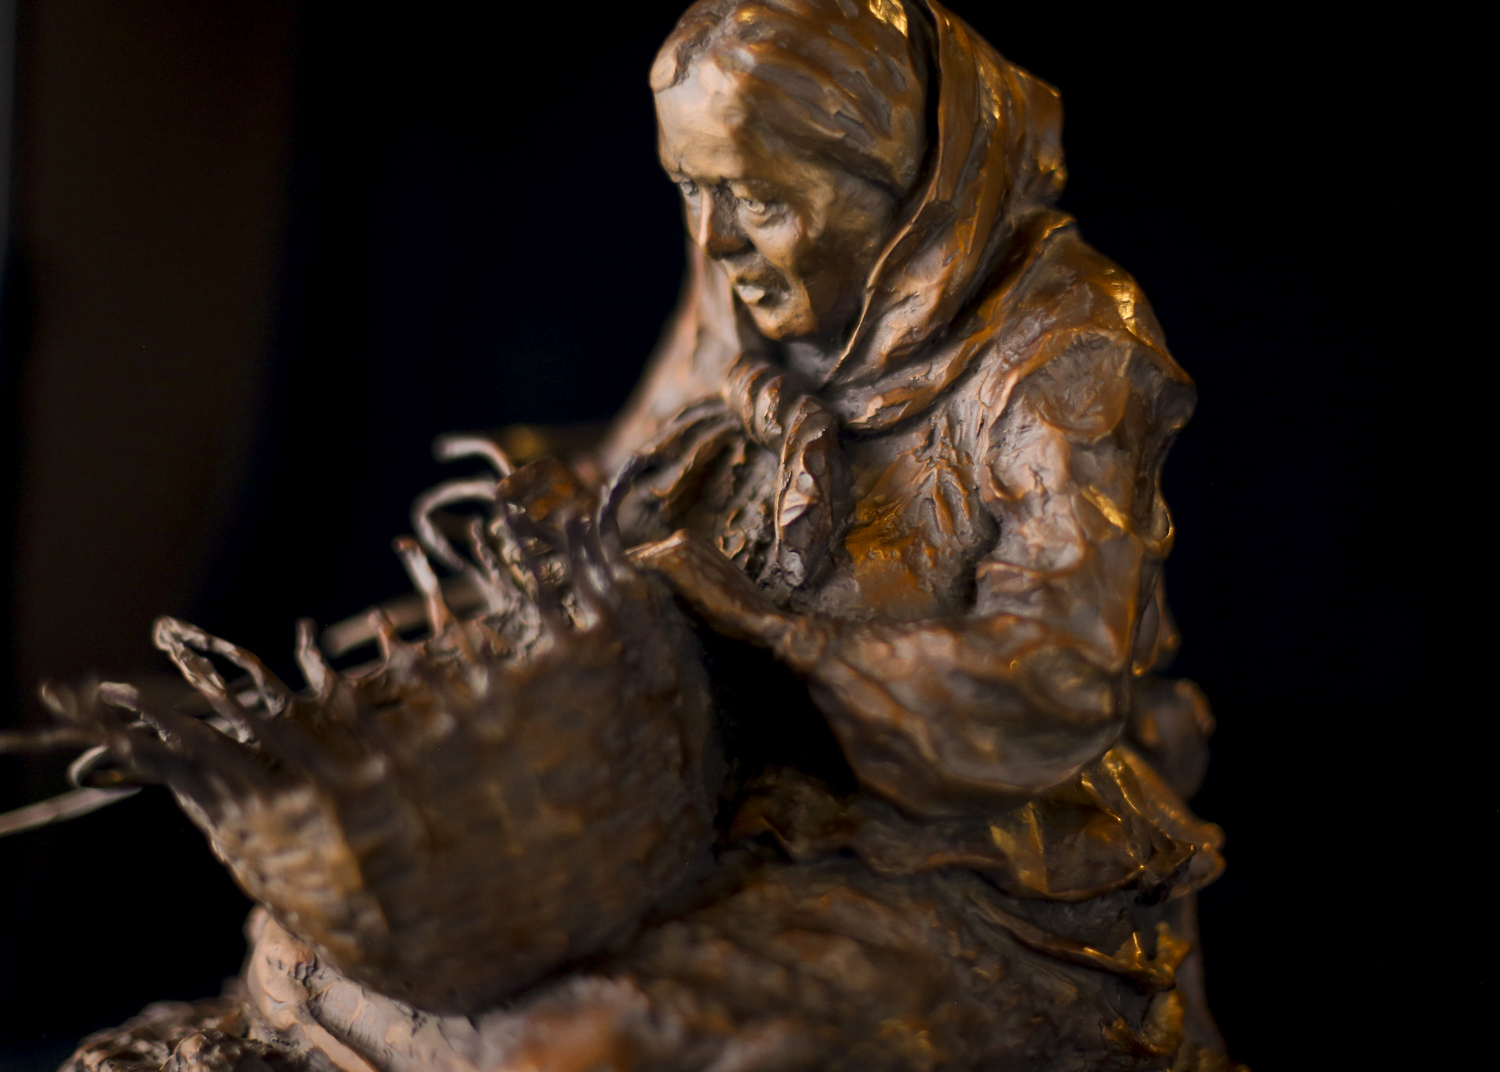 "Her Hands Know the Old Ways | 12"" x 9.5"" x 9.5"" 